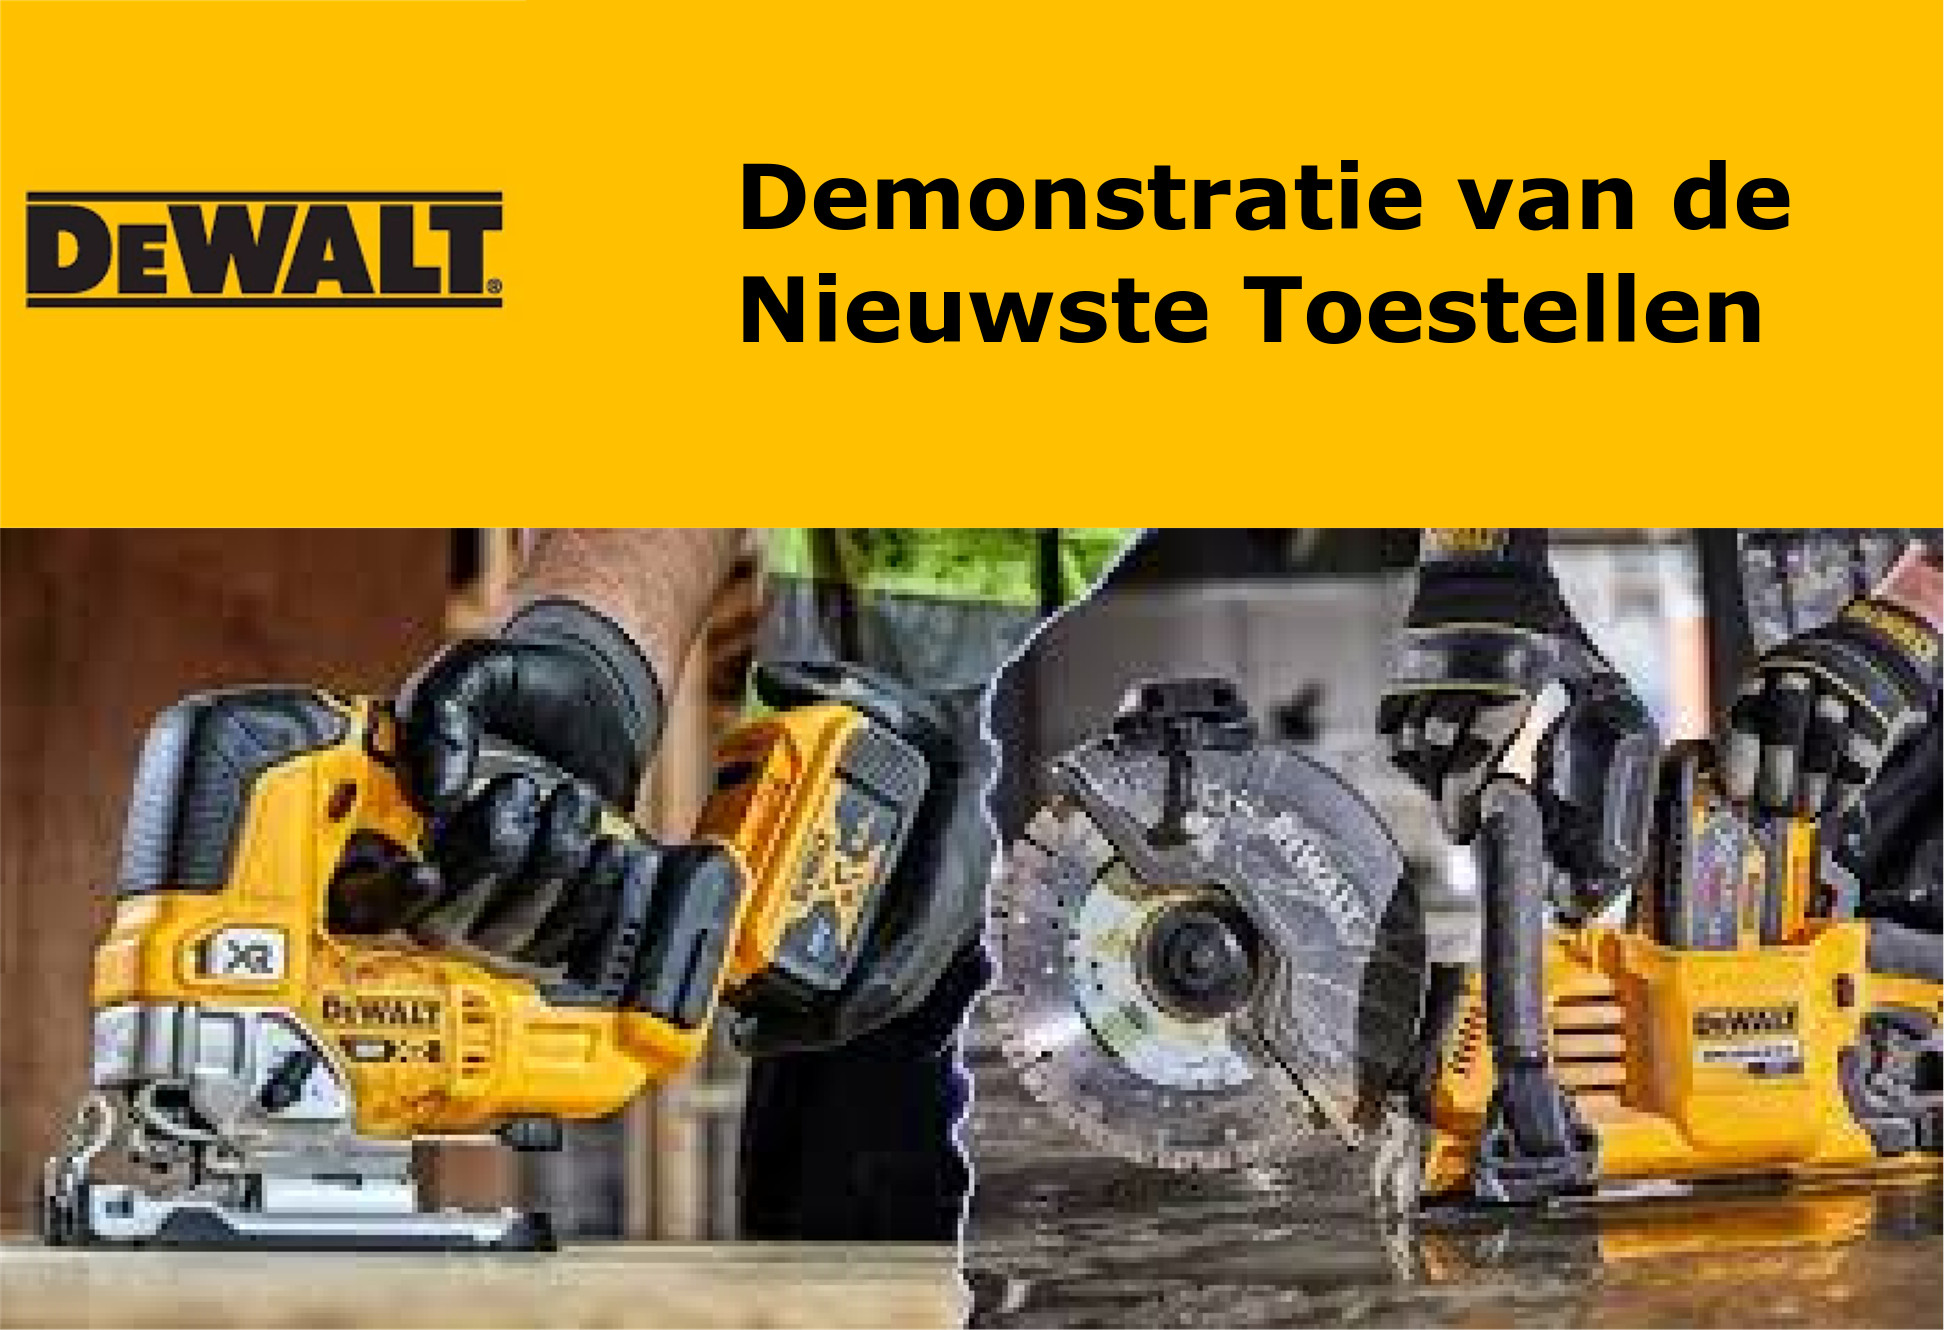 Dewalt demonstratie